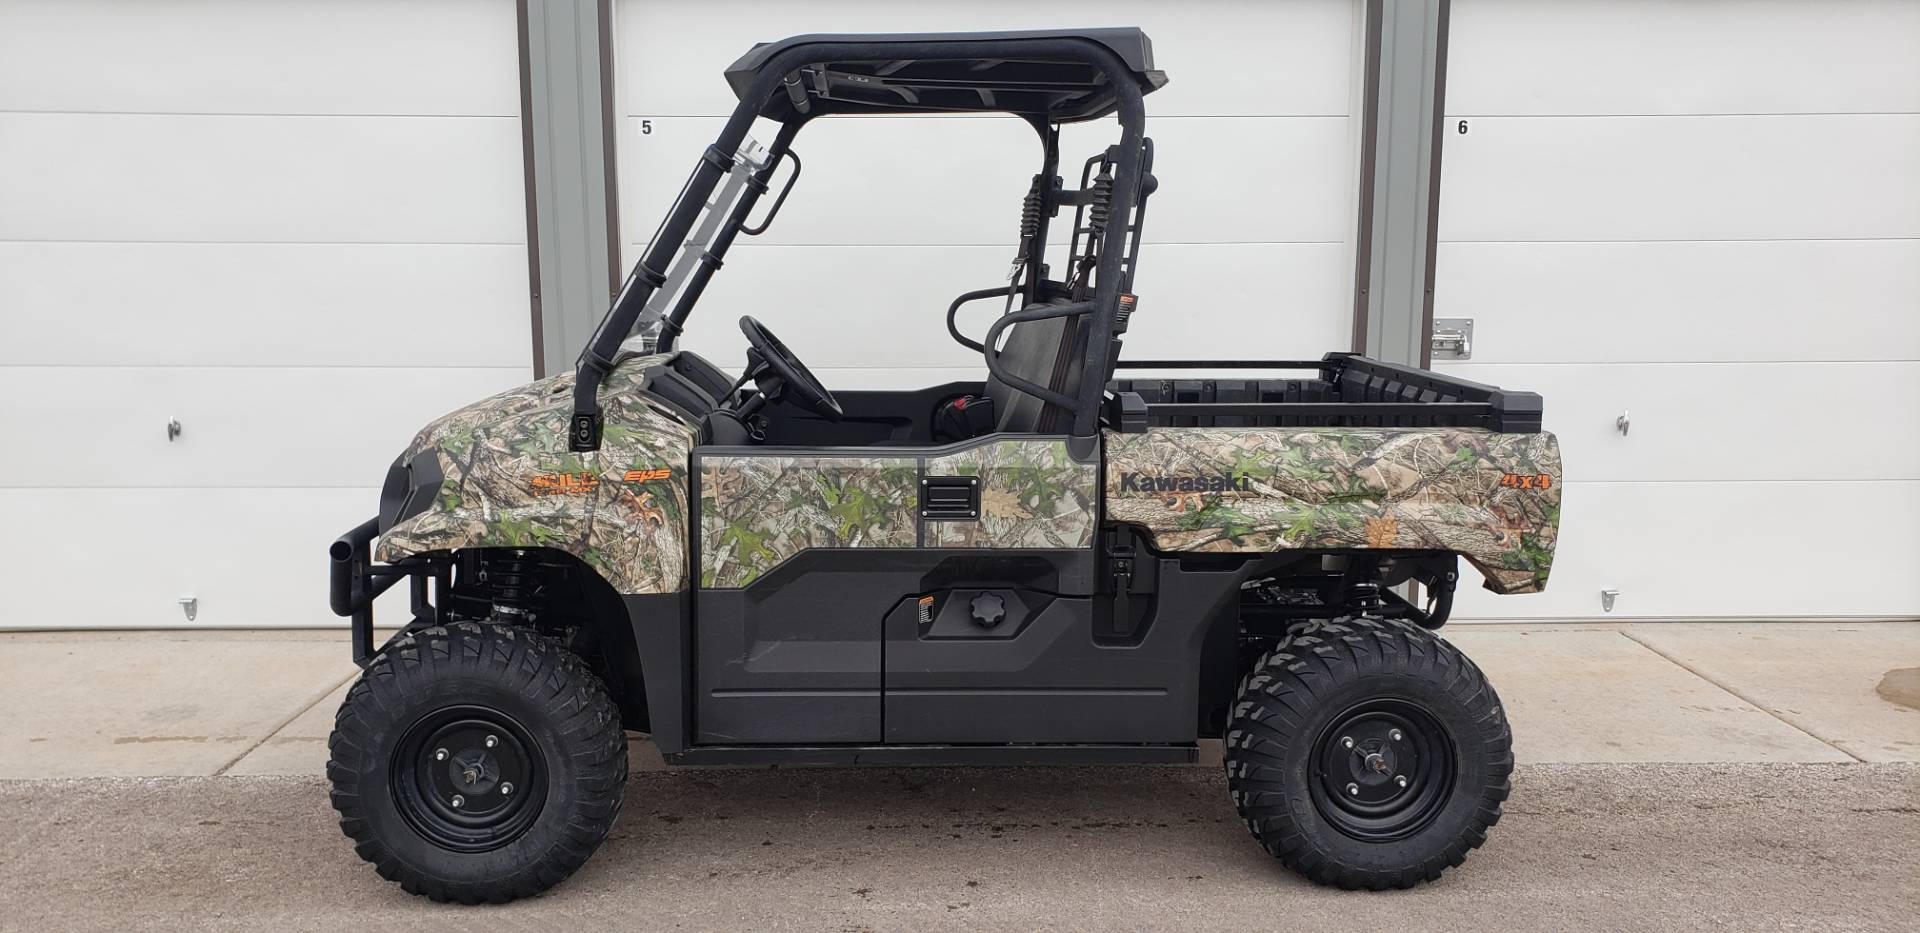 2019 Kawasaki Mule PRO-MX EPS Camo in Rapid City, South Dakota - Photo 6